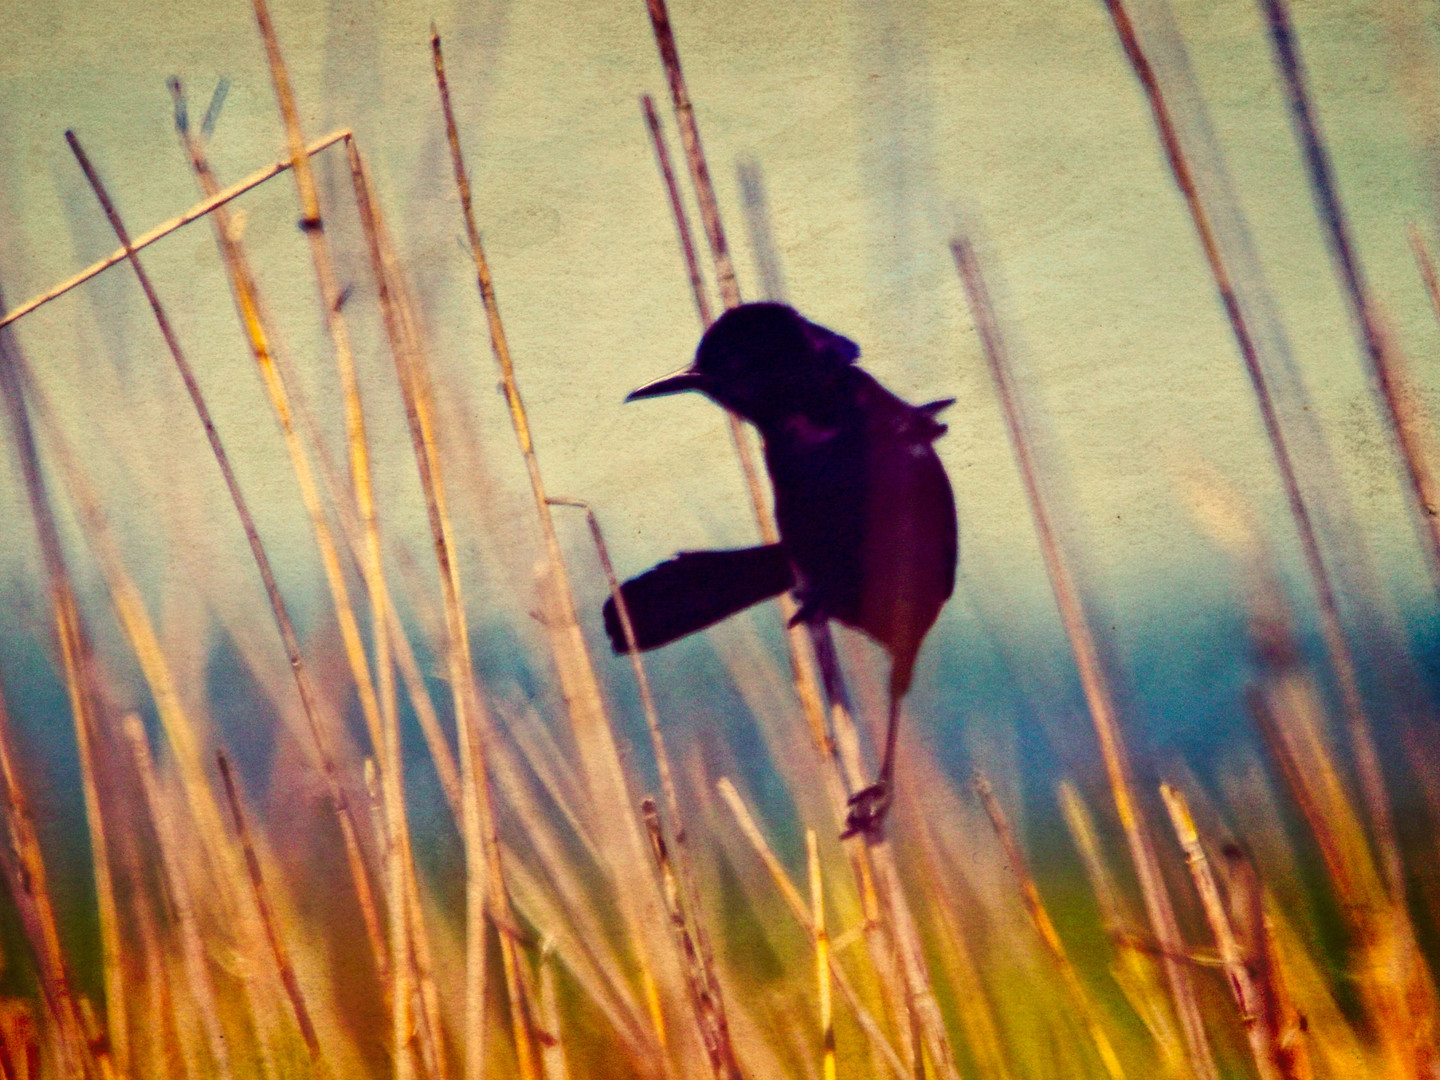 Boat-tailed Grackle Silhouette